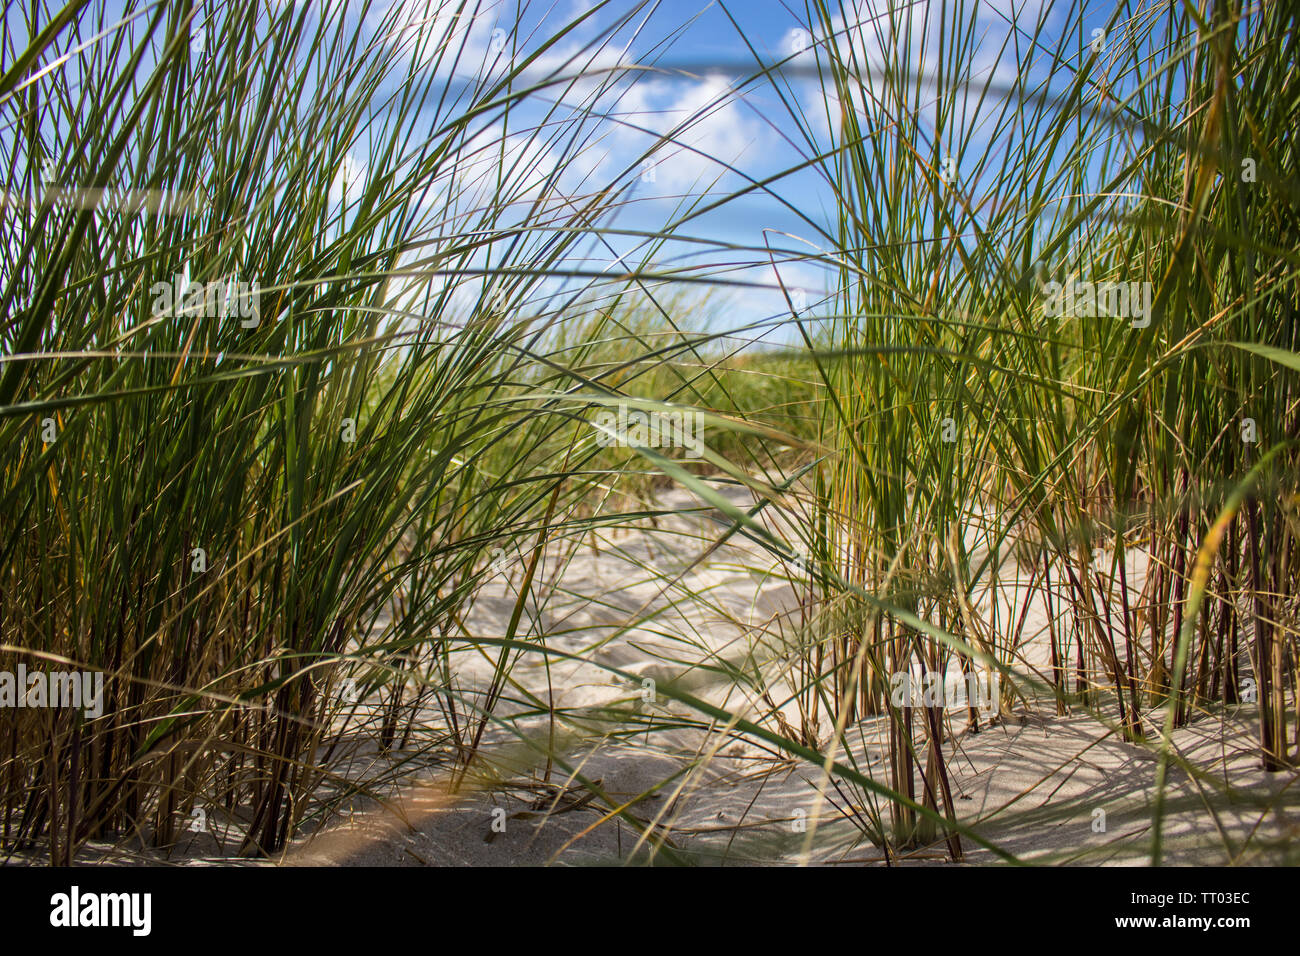 Beach and grass - Stock Image